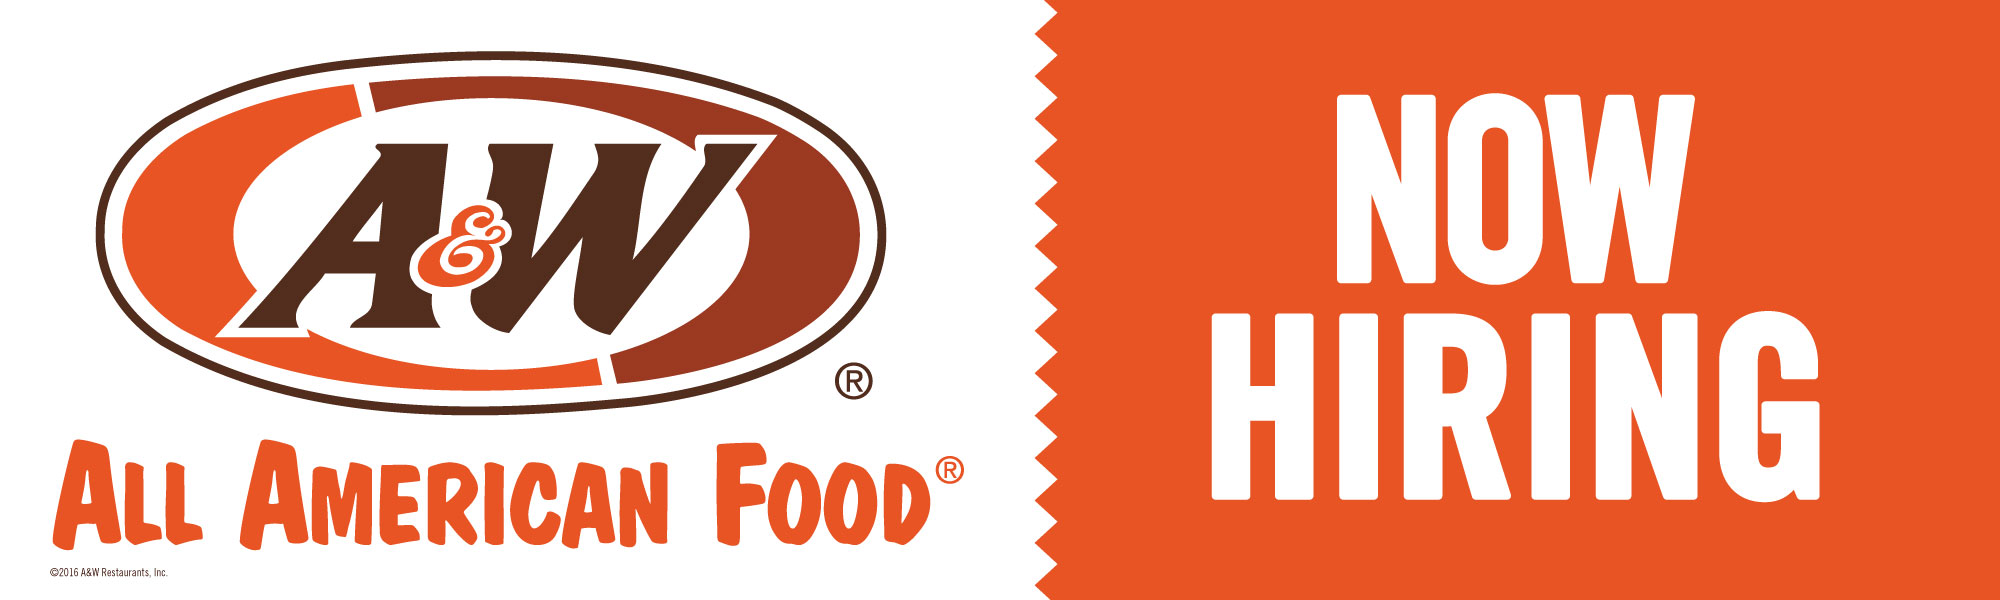 A&W Now Hiring (Outdoor Banner)